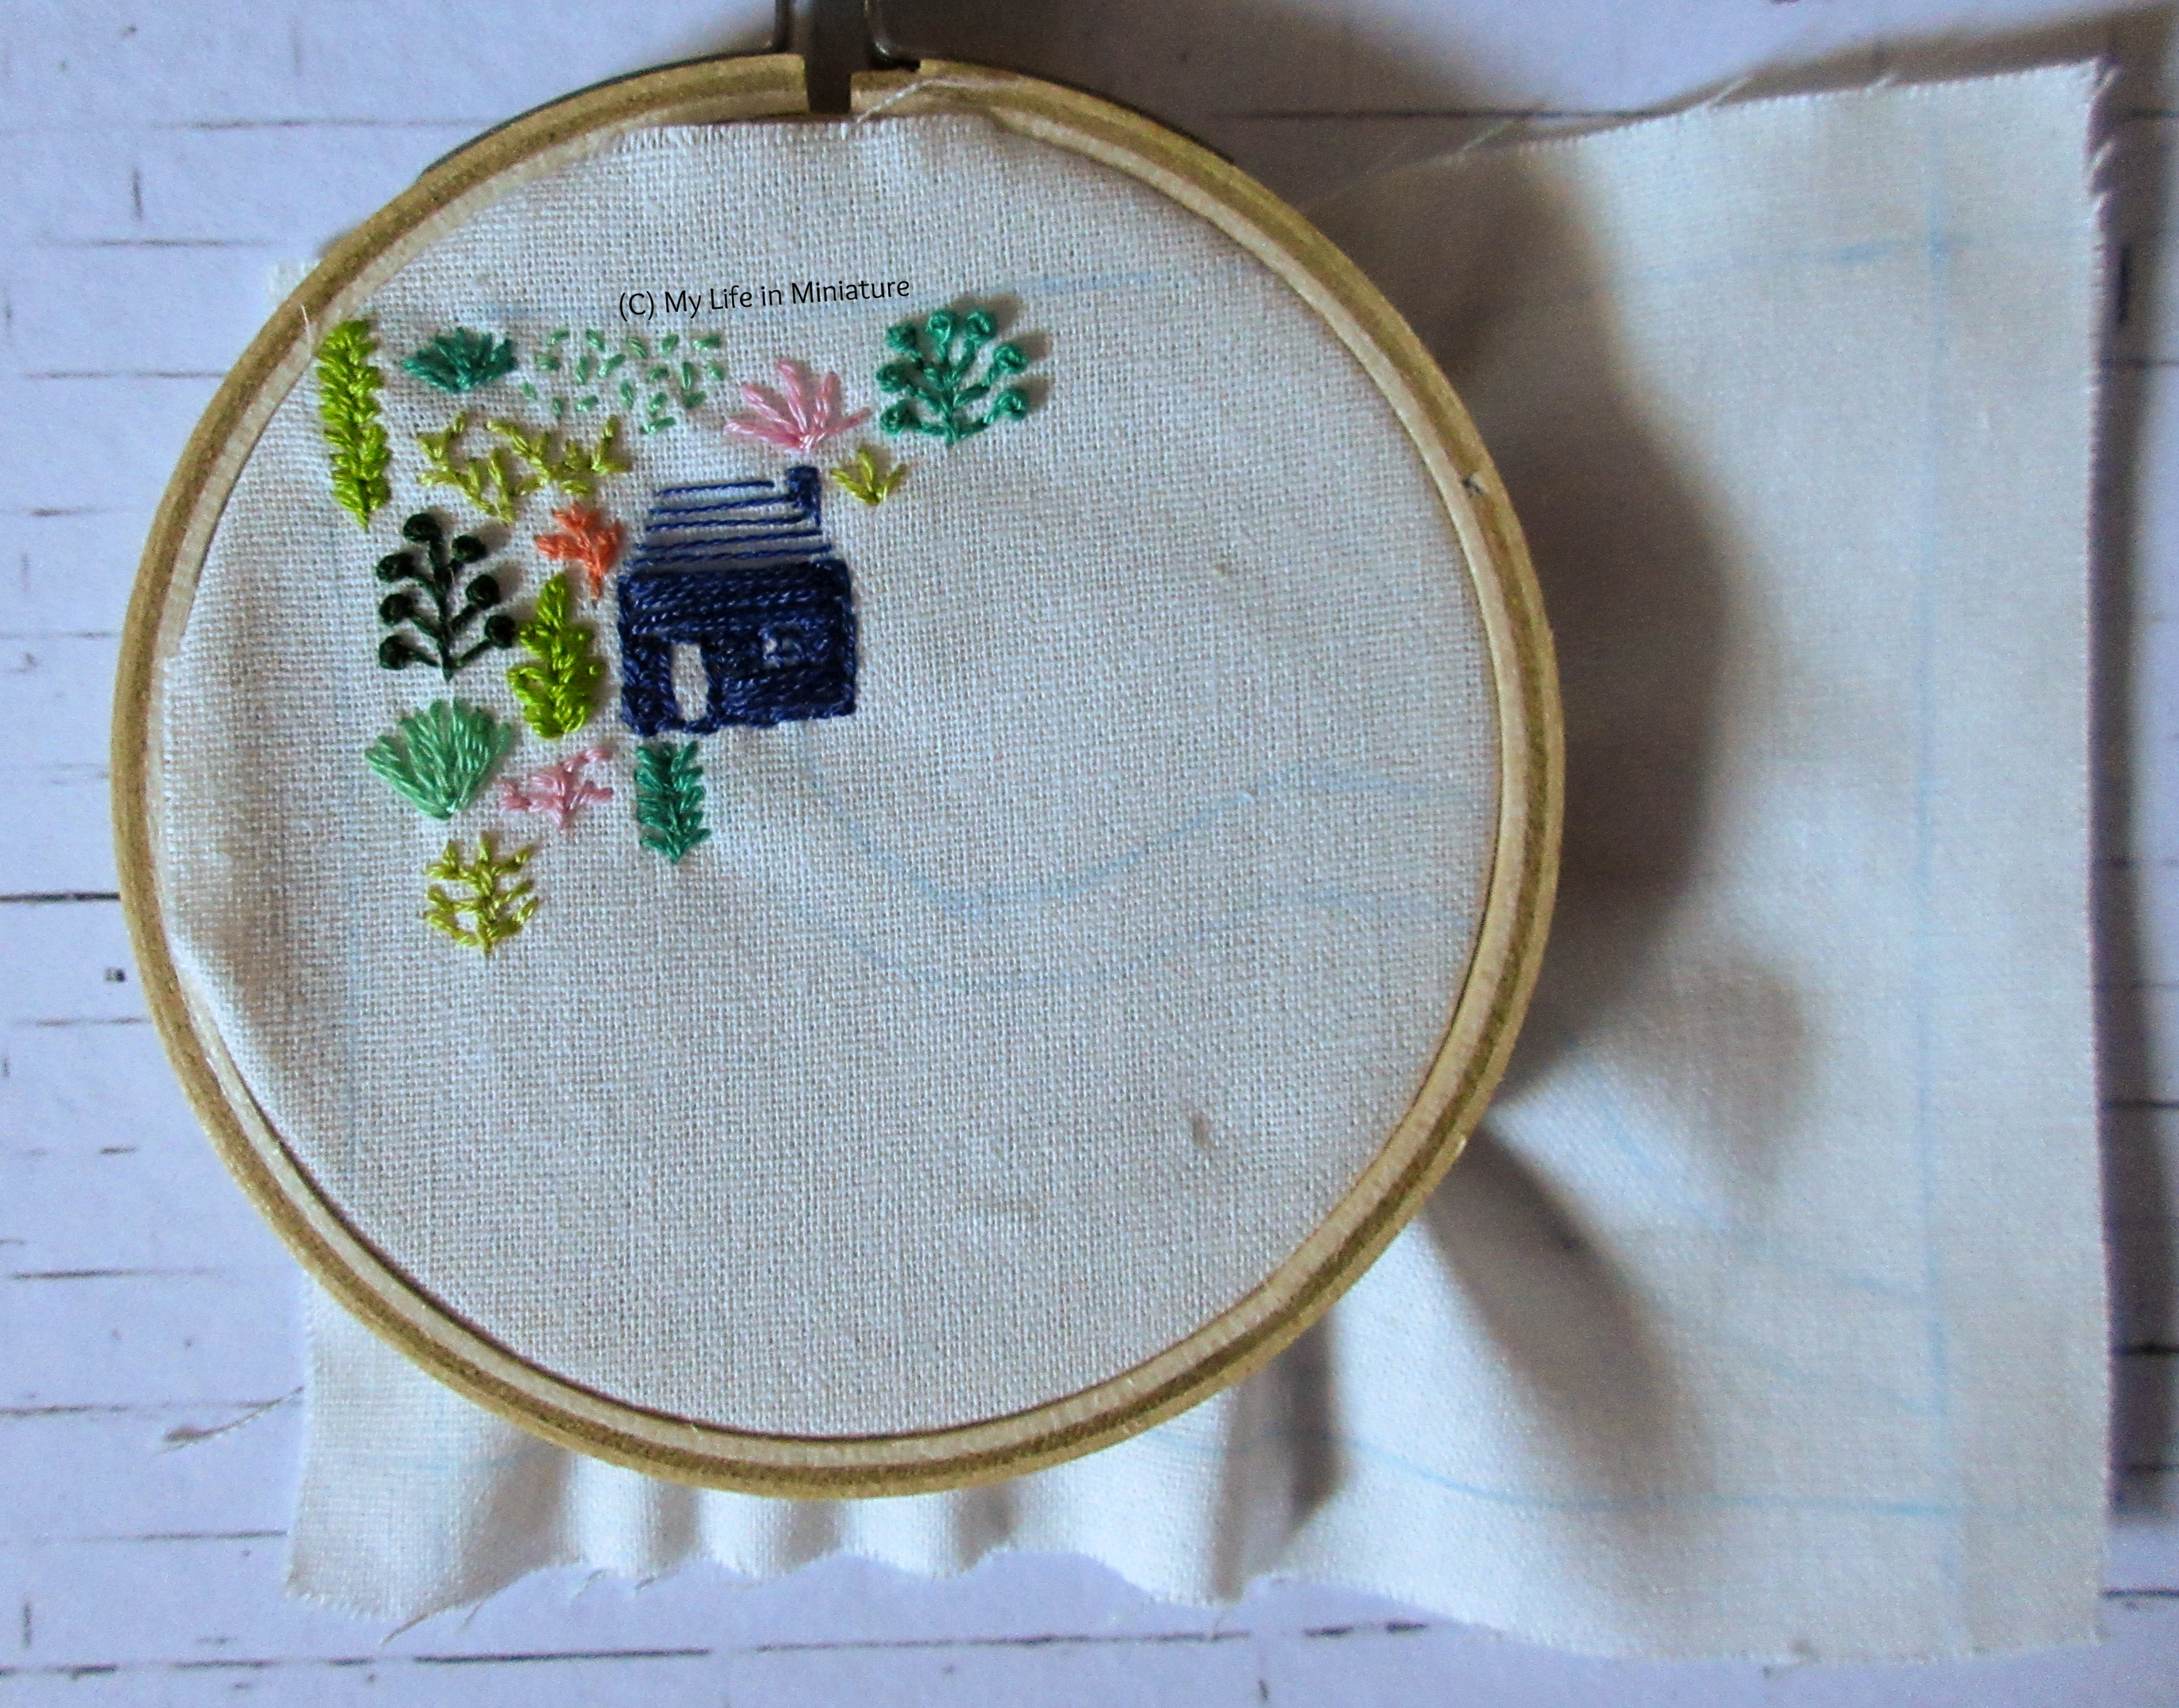 White fabric is in an embroidery hoop. Stitched on it is a small navy blue house, and an assortment of plants in different colours. All this is in the top left corner of the fabric.